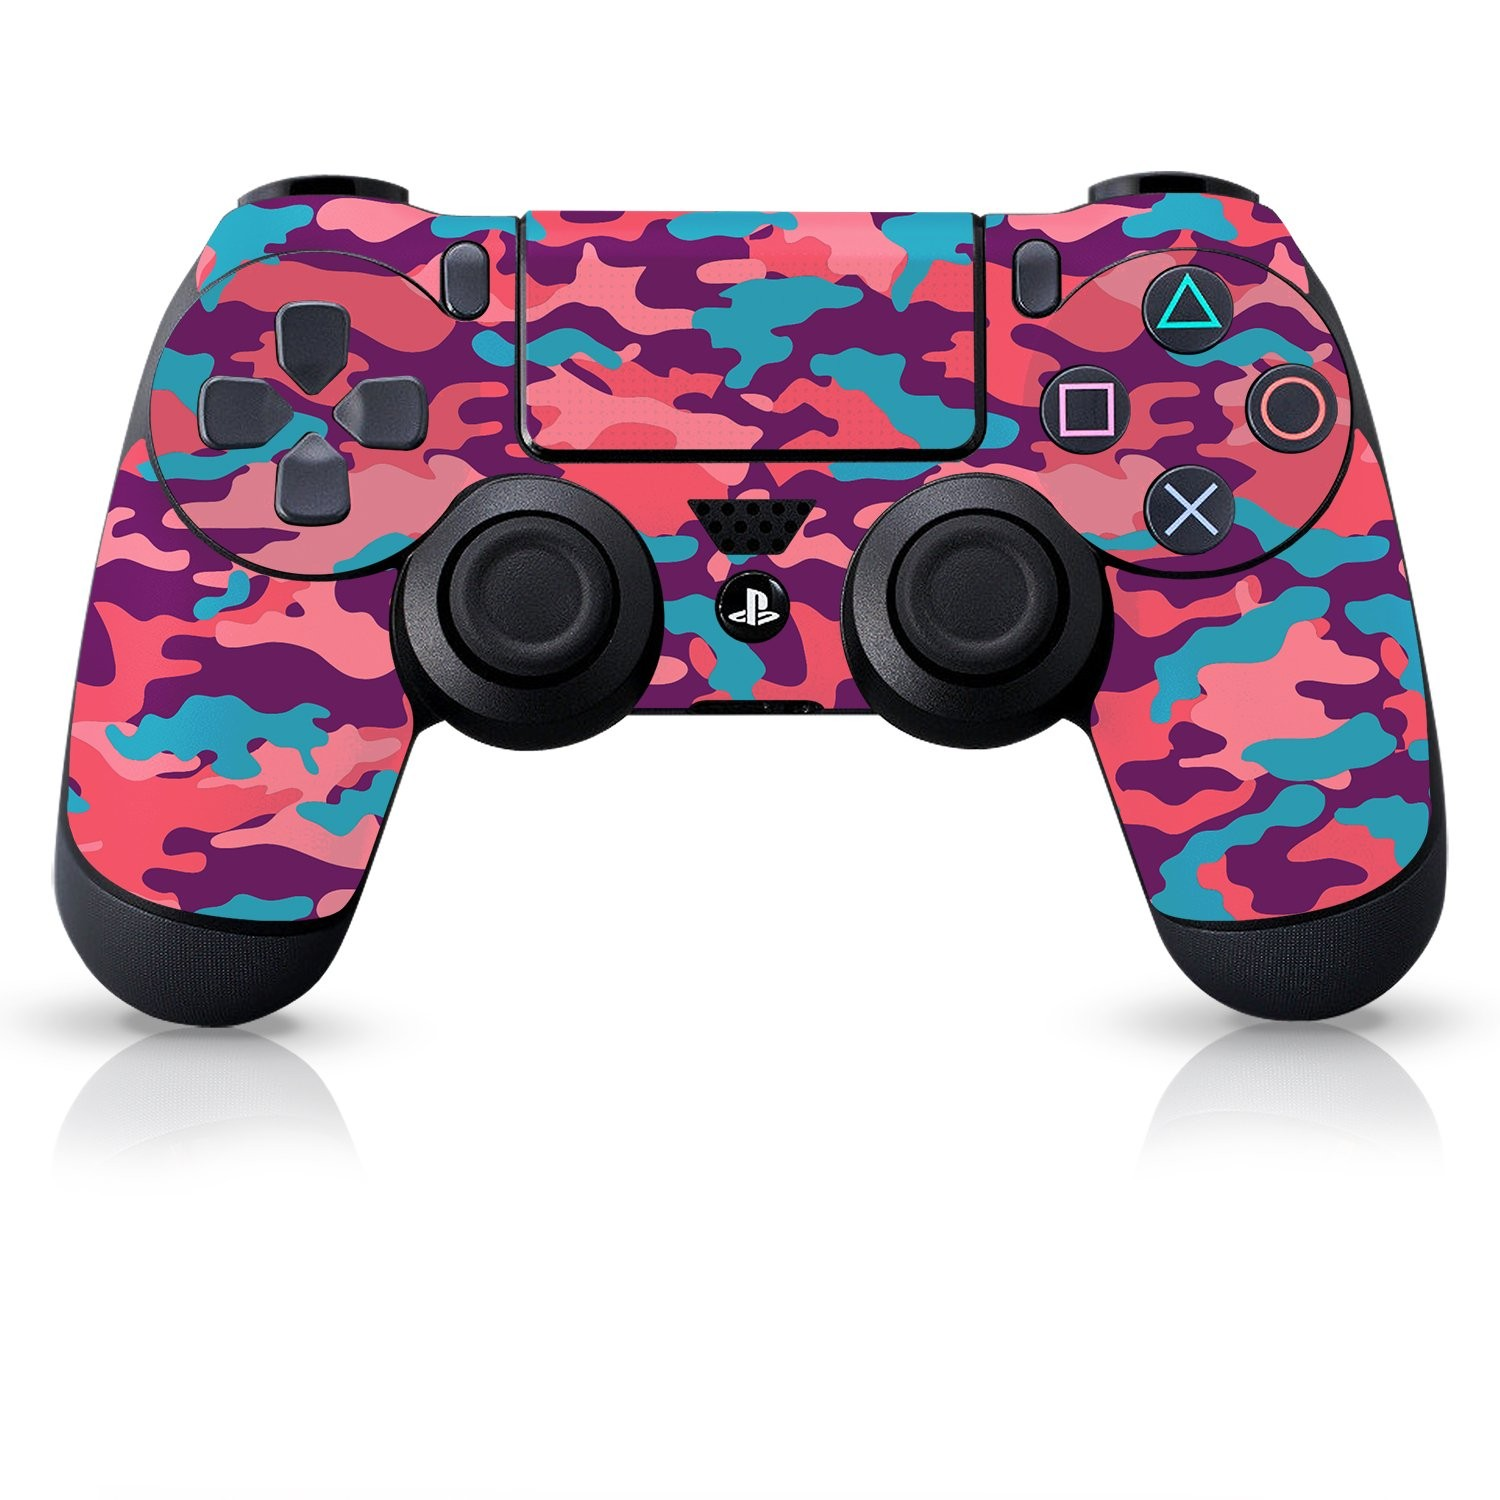 Officially Licensed Controller Skin - Bubble Gum Camo